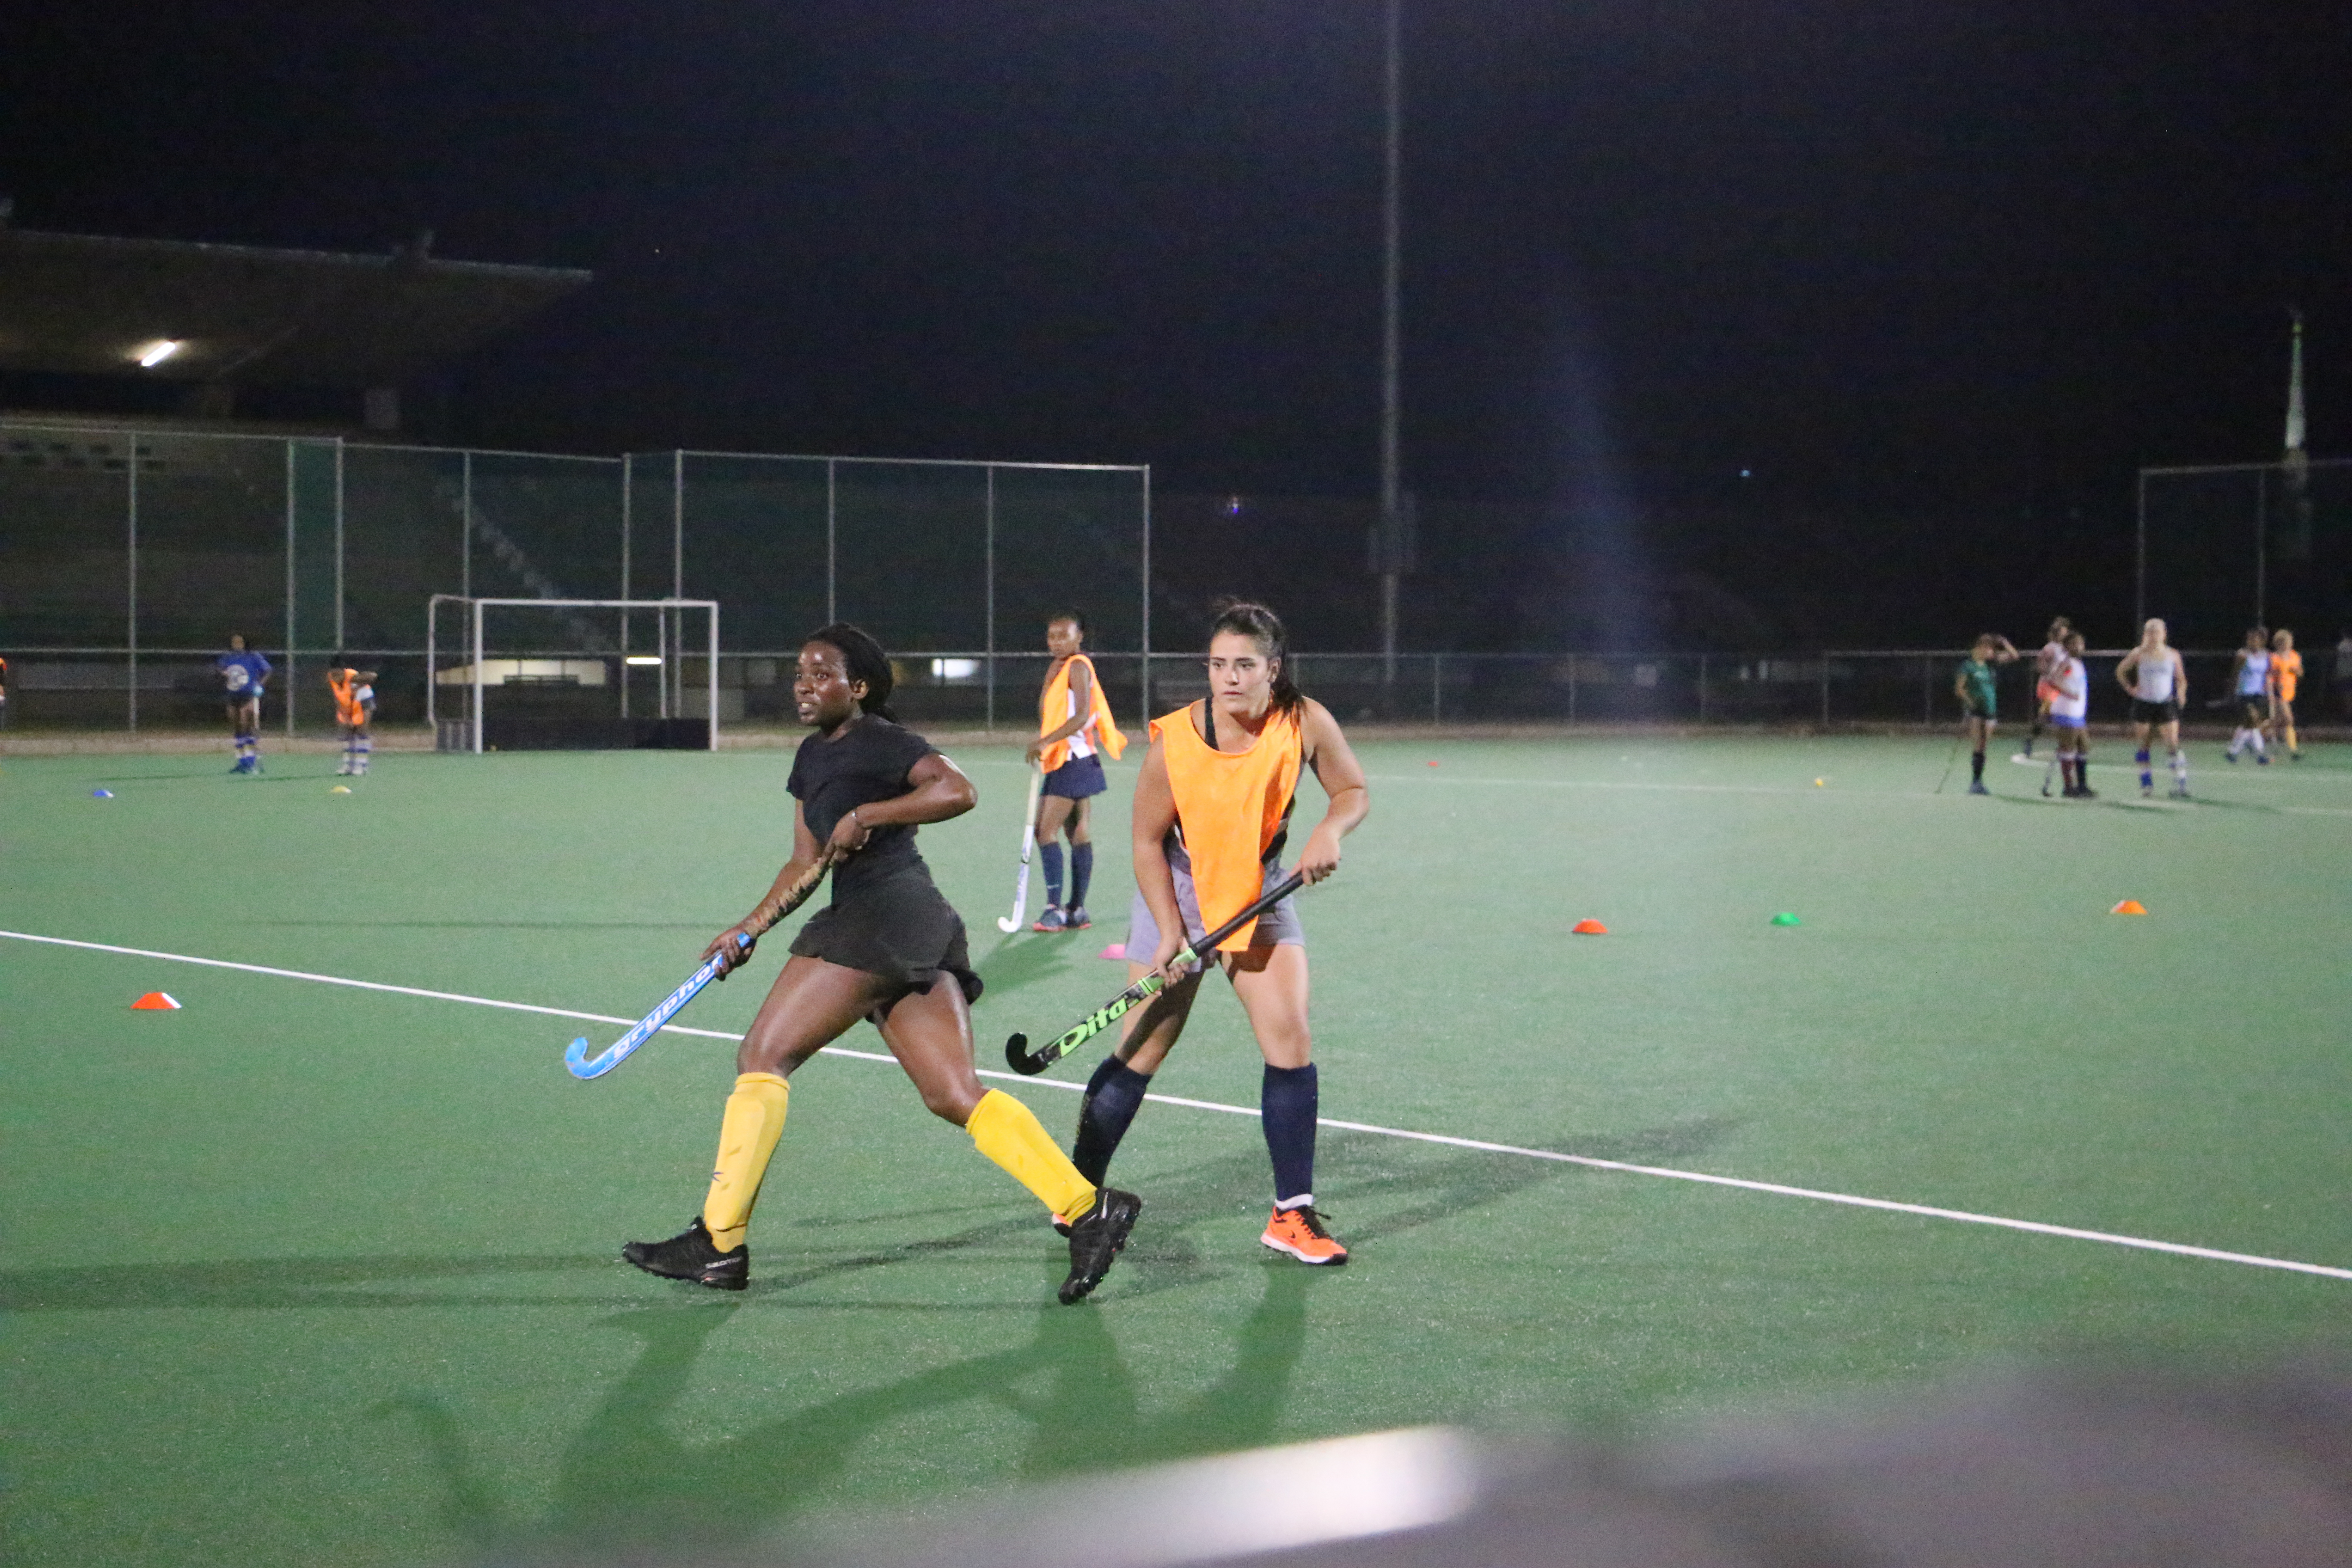 Wits hockey set to host two tournaments in 2017